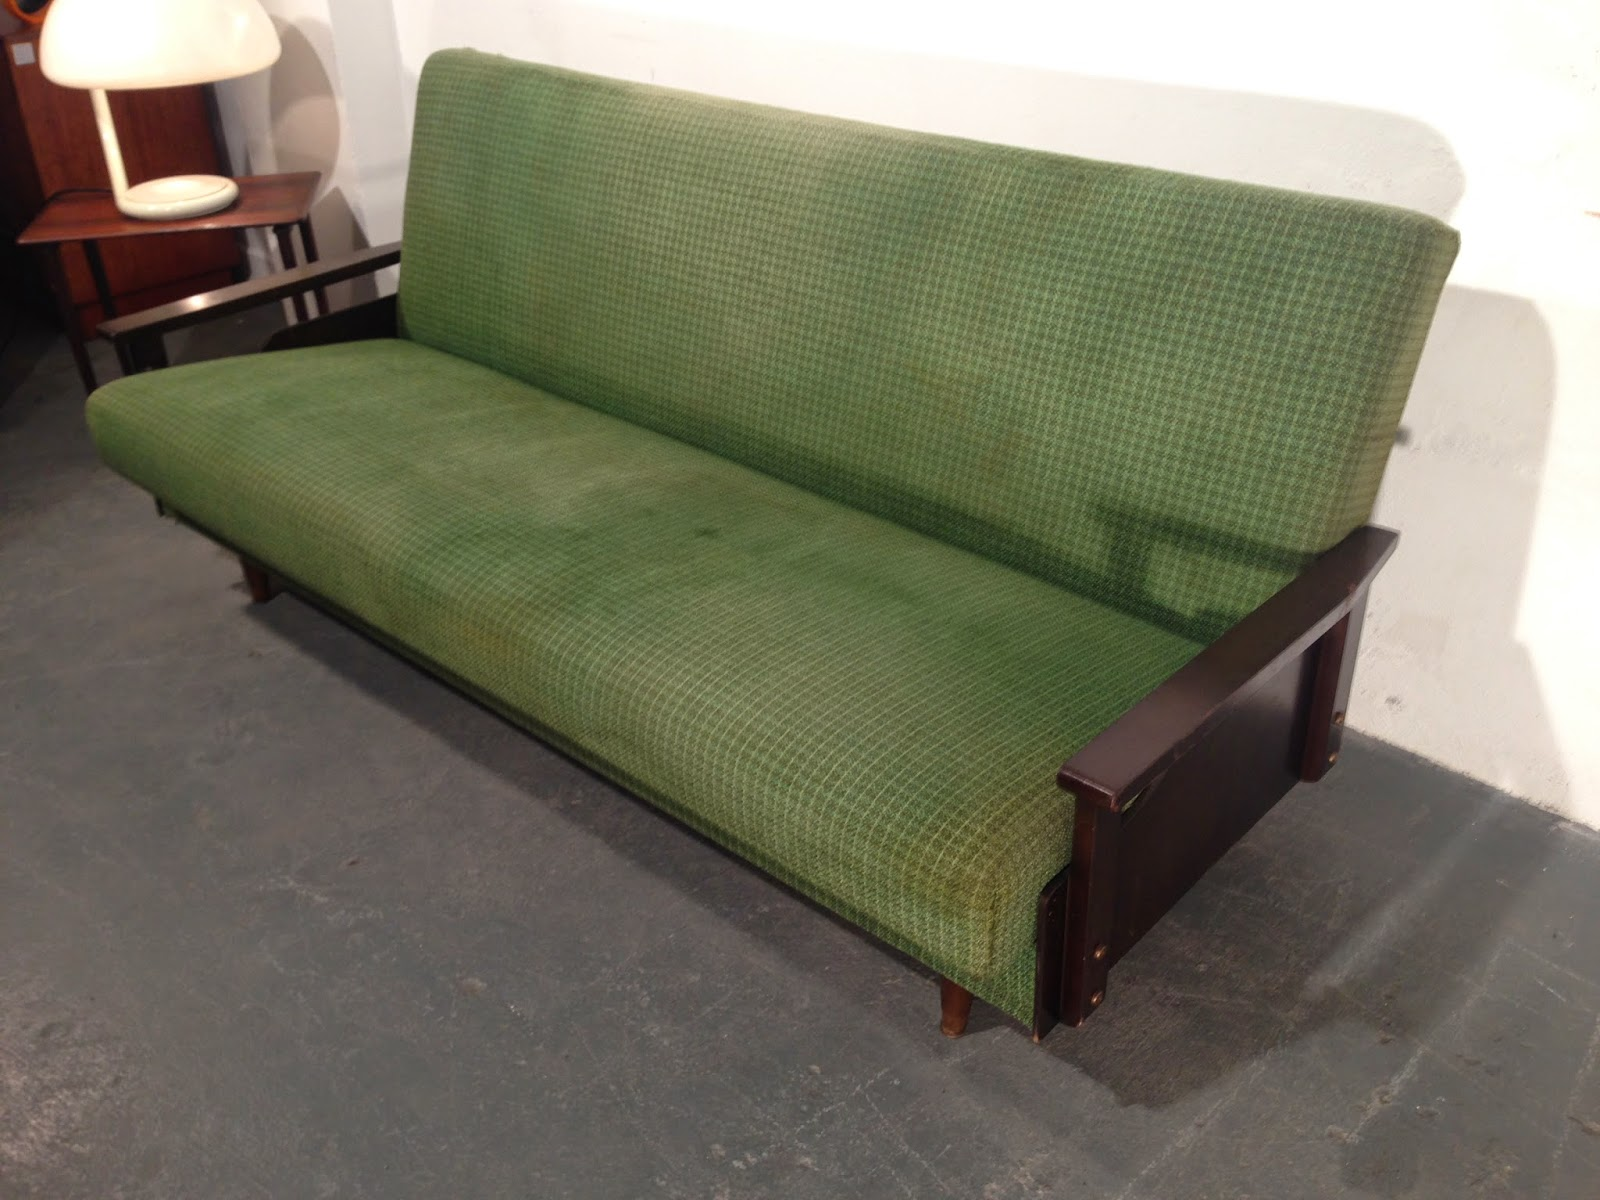 Vintage Sofa Bed Made By Hughie Smith Of Navan Furniture   Vintage Furniture  Ireland   Original